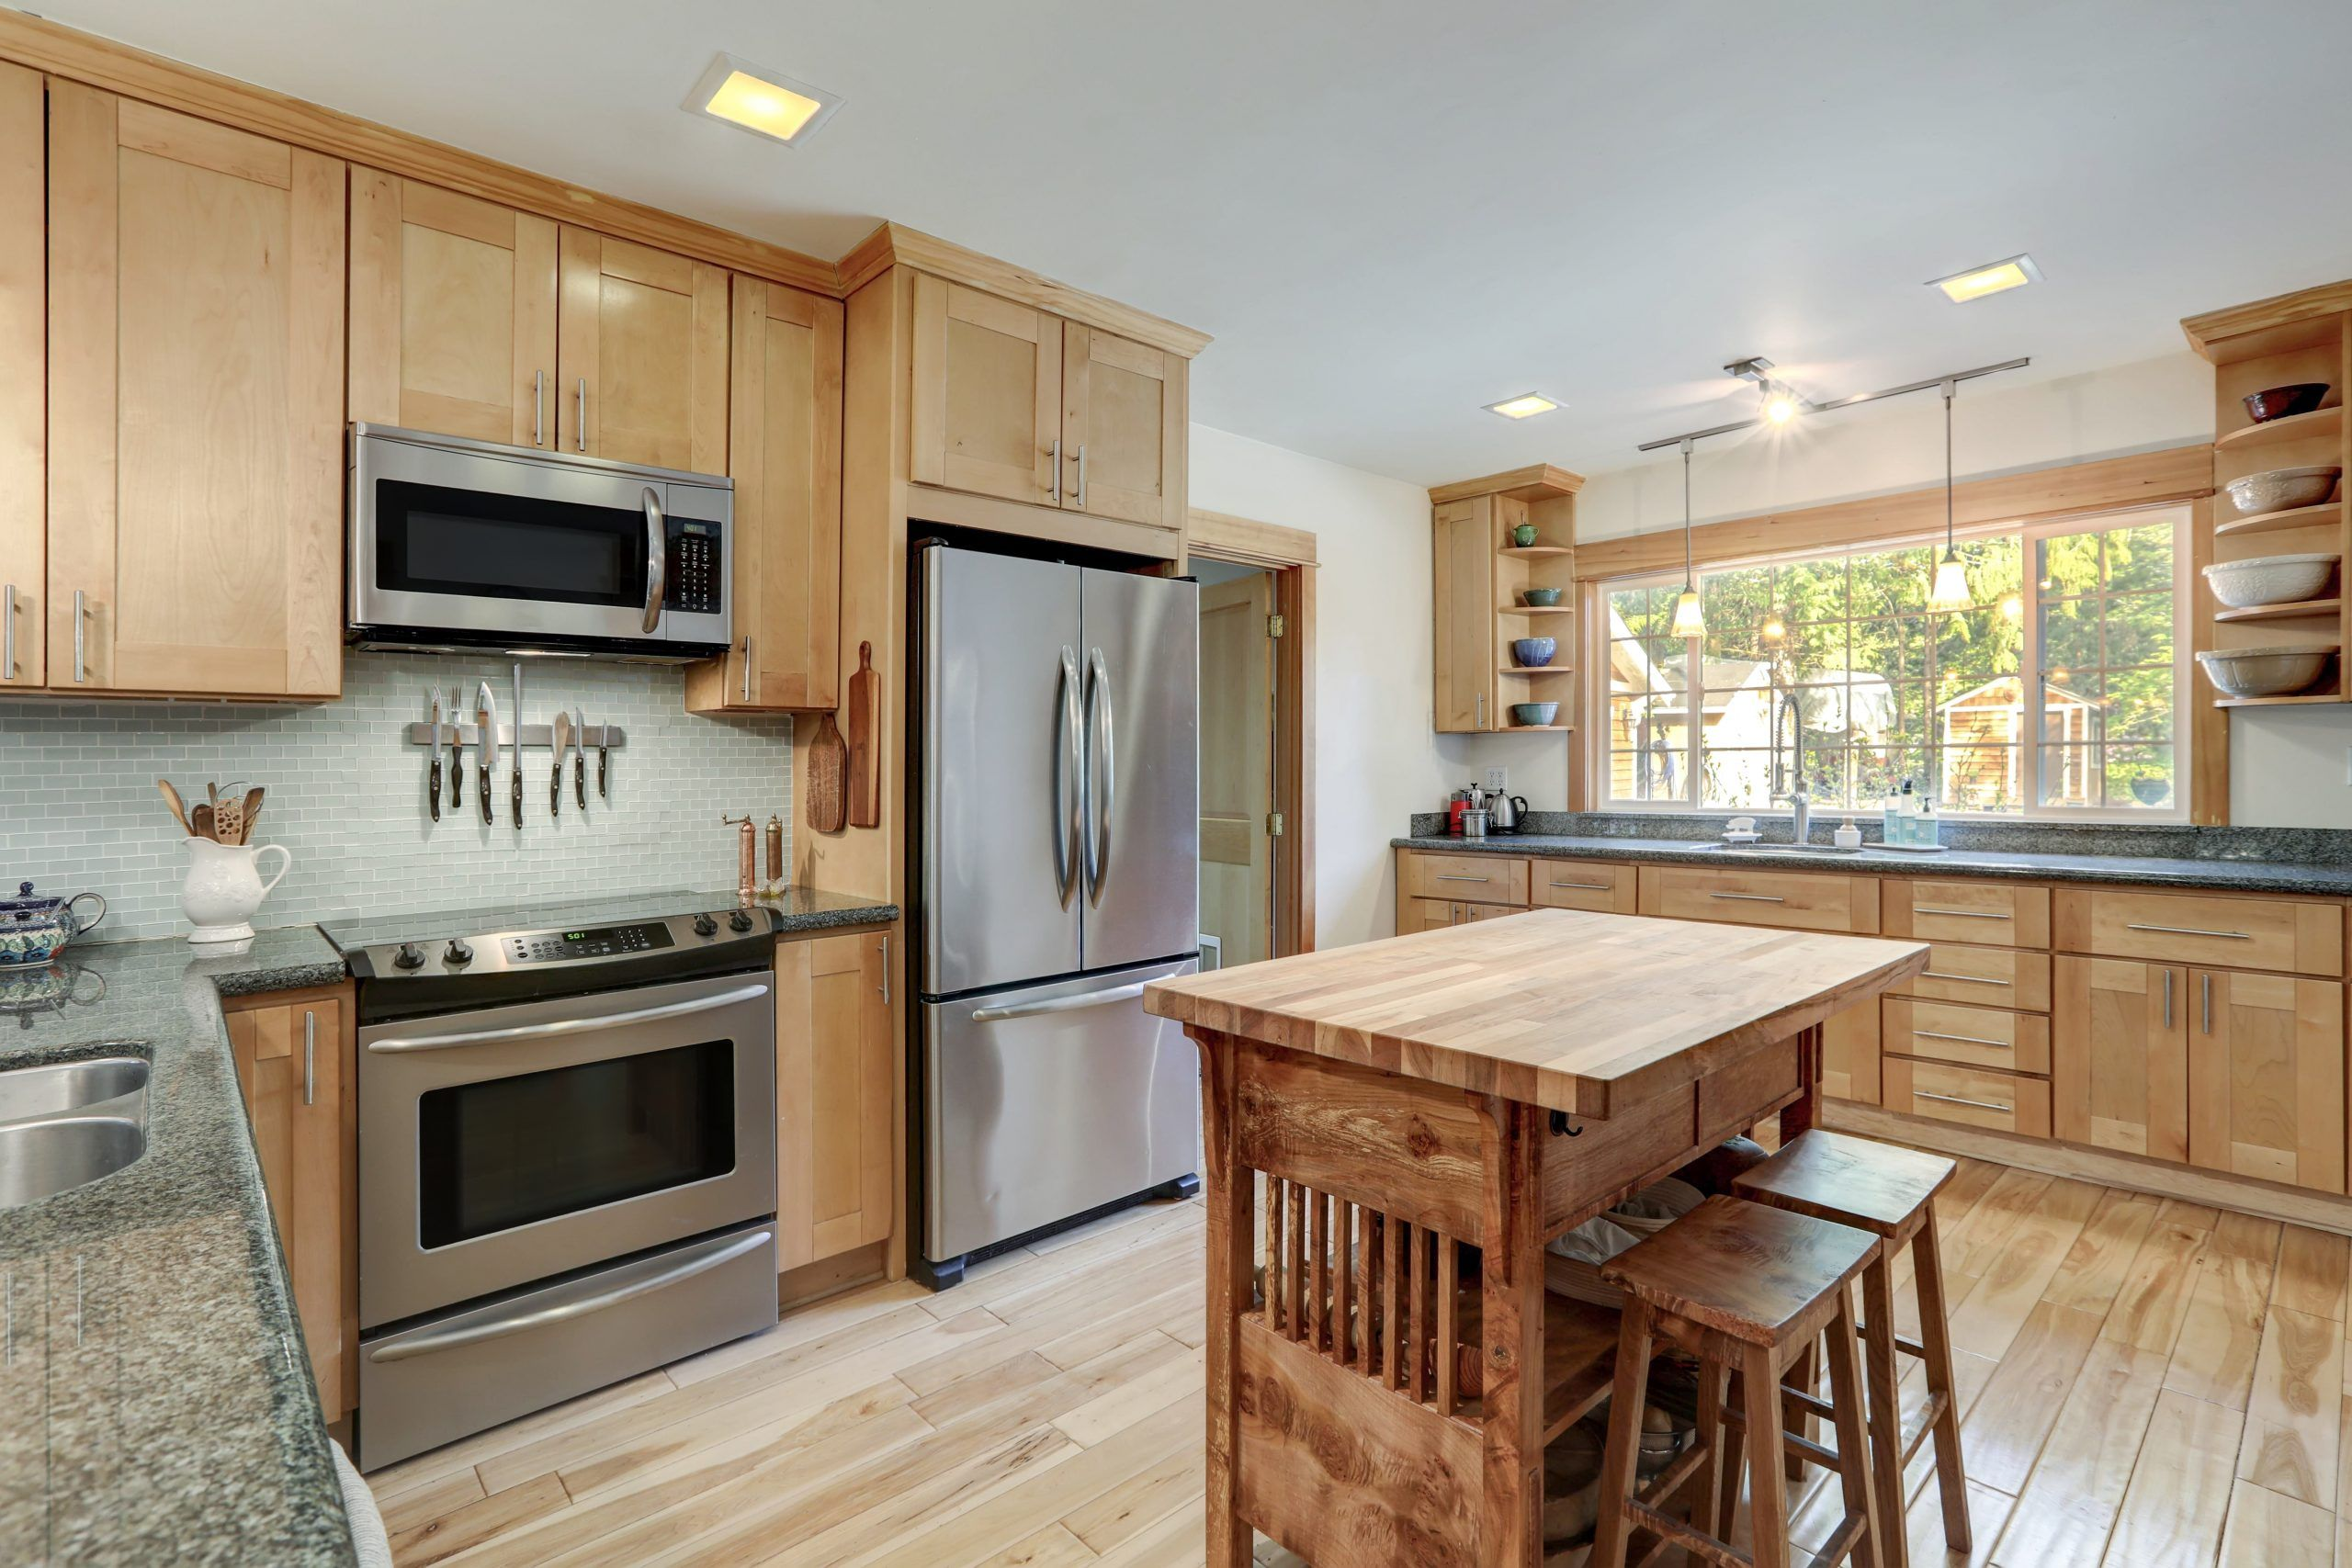 Kitchen Cabinets Are One Of The Biggest Decisions Any Homeowner Has To Make During A Home Remodel C In 2020 Kitchen Cabinets Kitchen Cabinet Colors Off White Cabinets